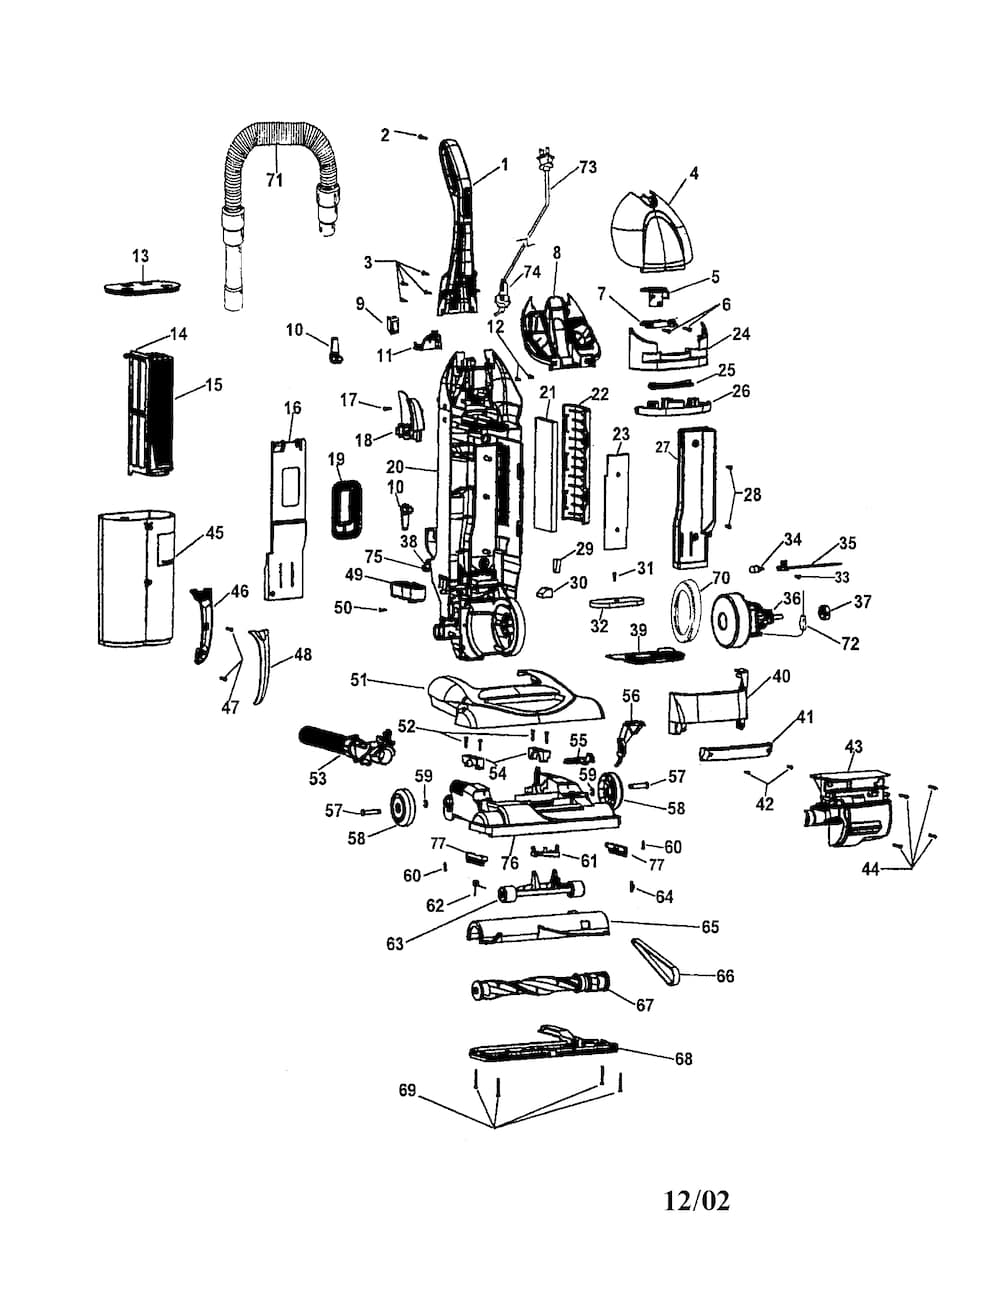 Hoover Windtunnel Bagless Parts | Model U5721900 | Sears Partsdirect throughout Hoover Windtunnel T Series Parts Diagram